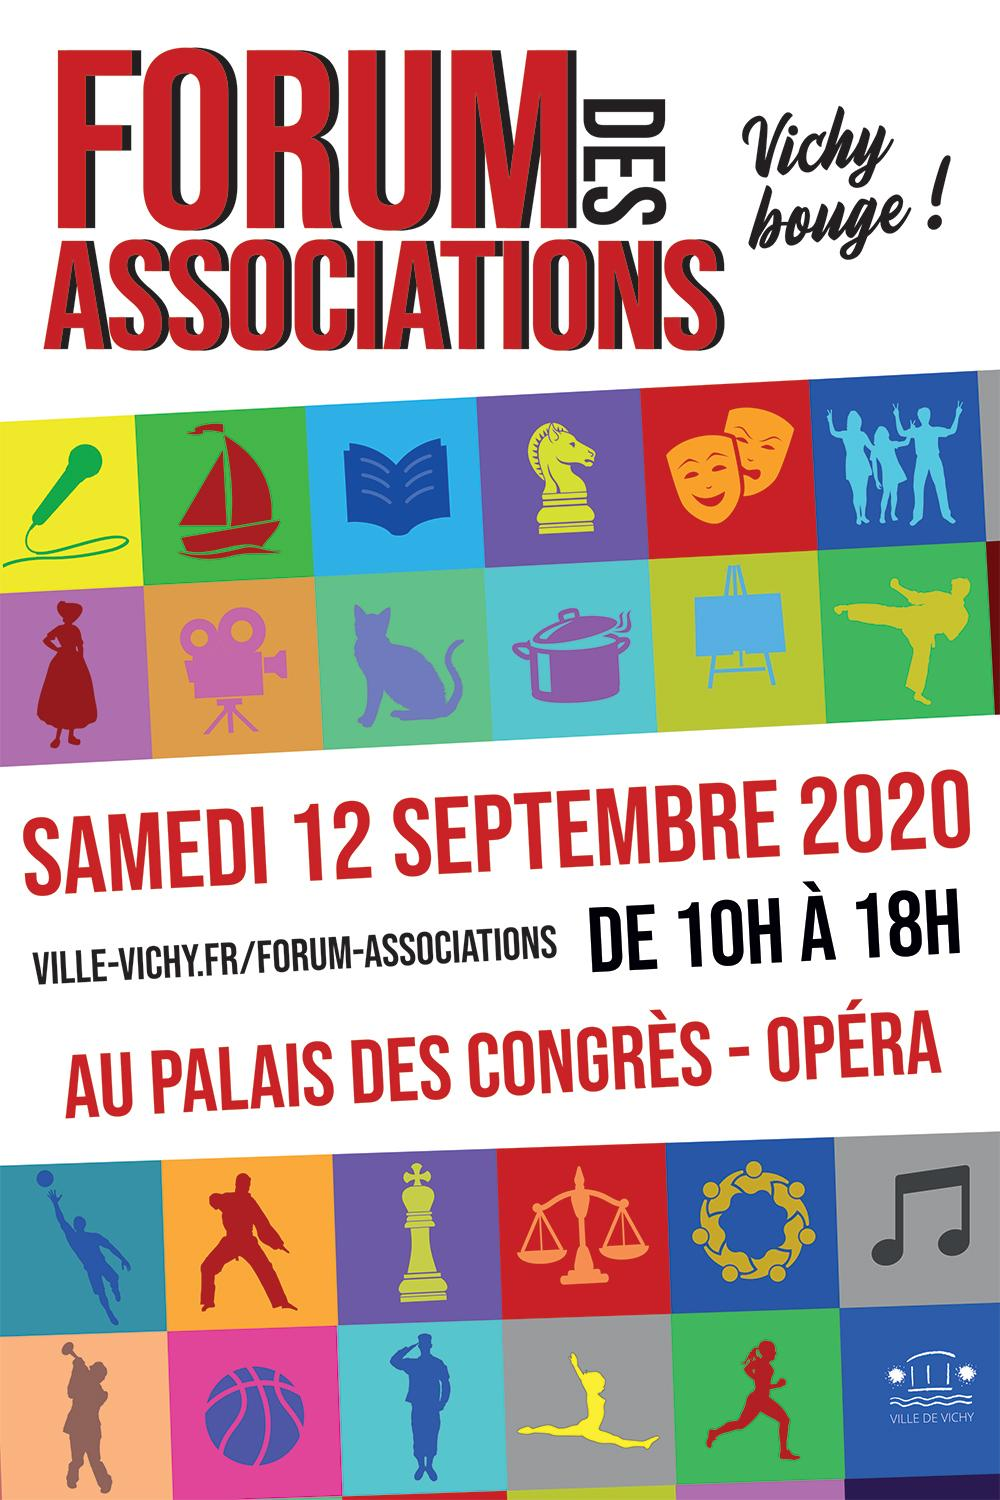 Forum associations vichy 2020